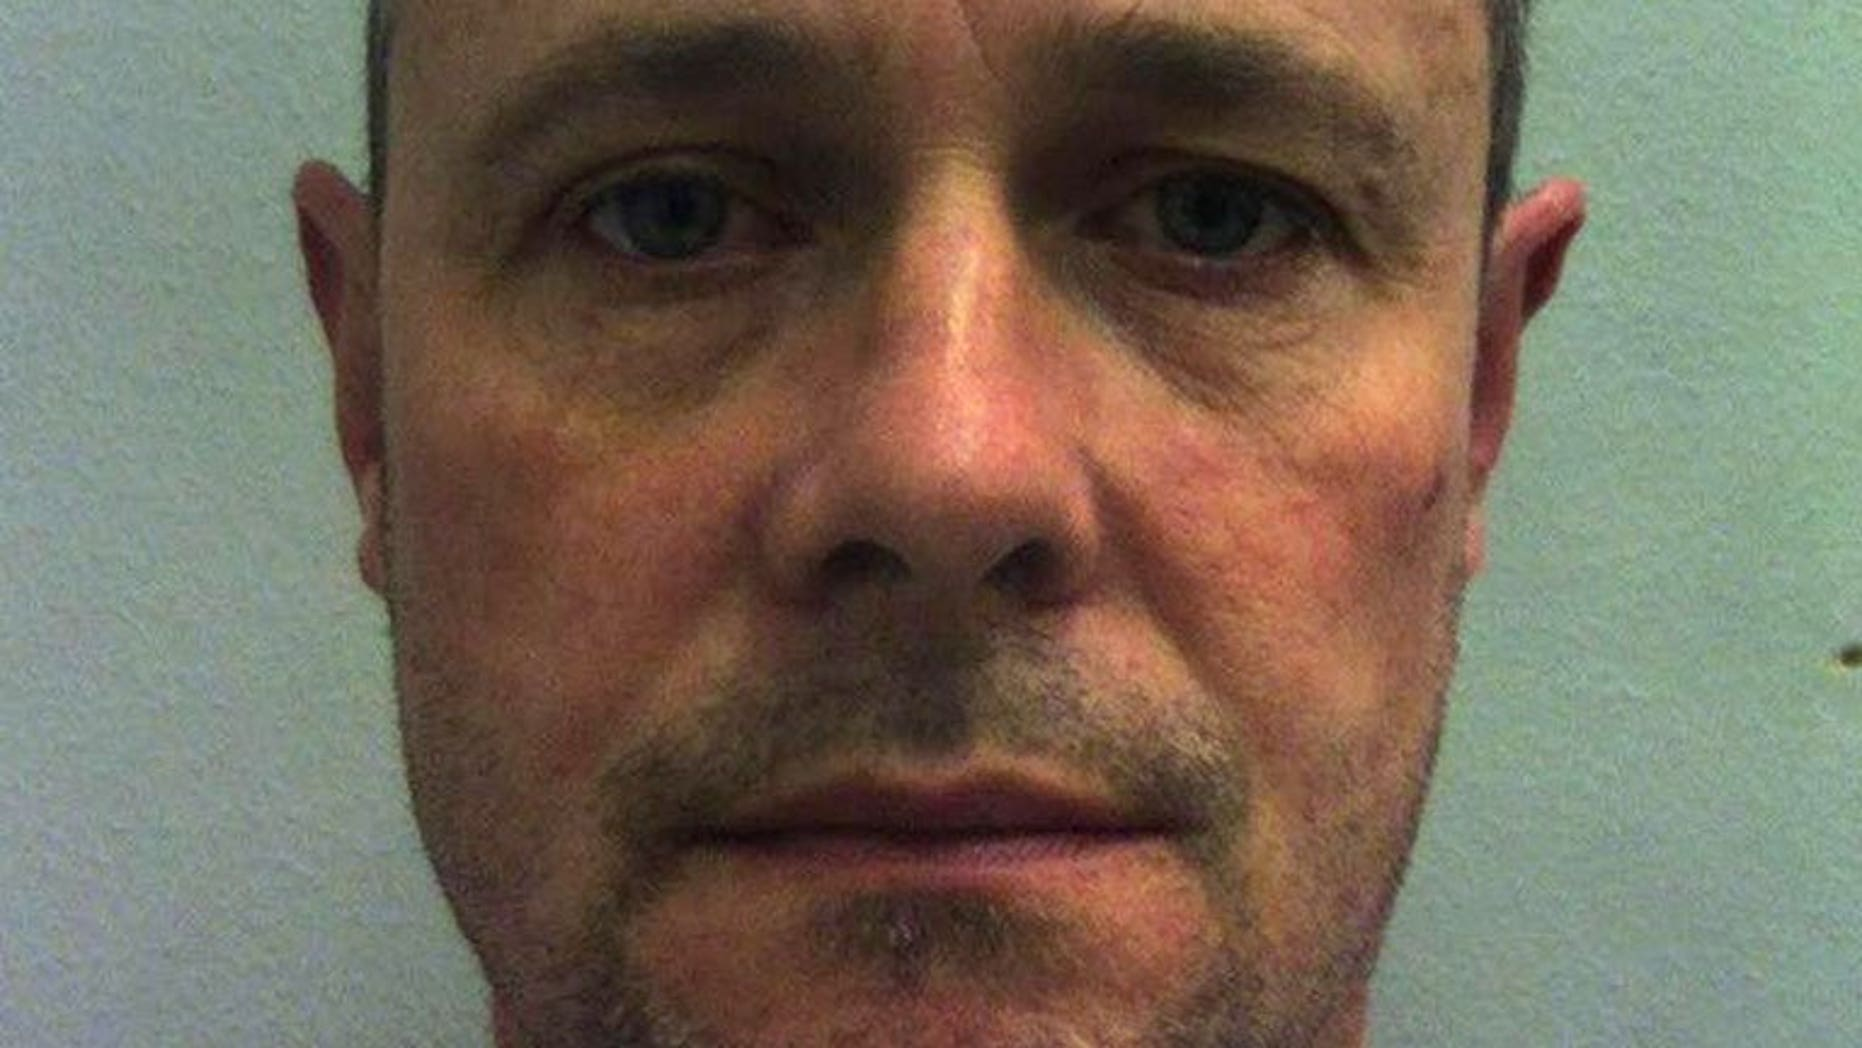 Mark Bridger, now convicted of the abduction and murder of April Jones, in an undated photograph released by Manchester police. The killer of five-year-old April Jones has been slashed in the face with an improvised knife by a fellow inmate at Wakefield prison, a report said on Tuesday.